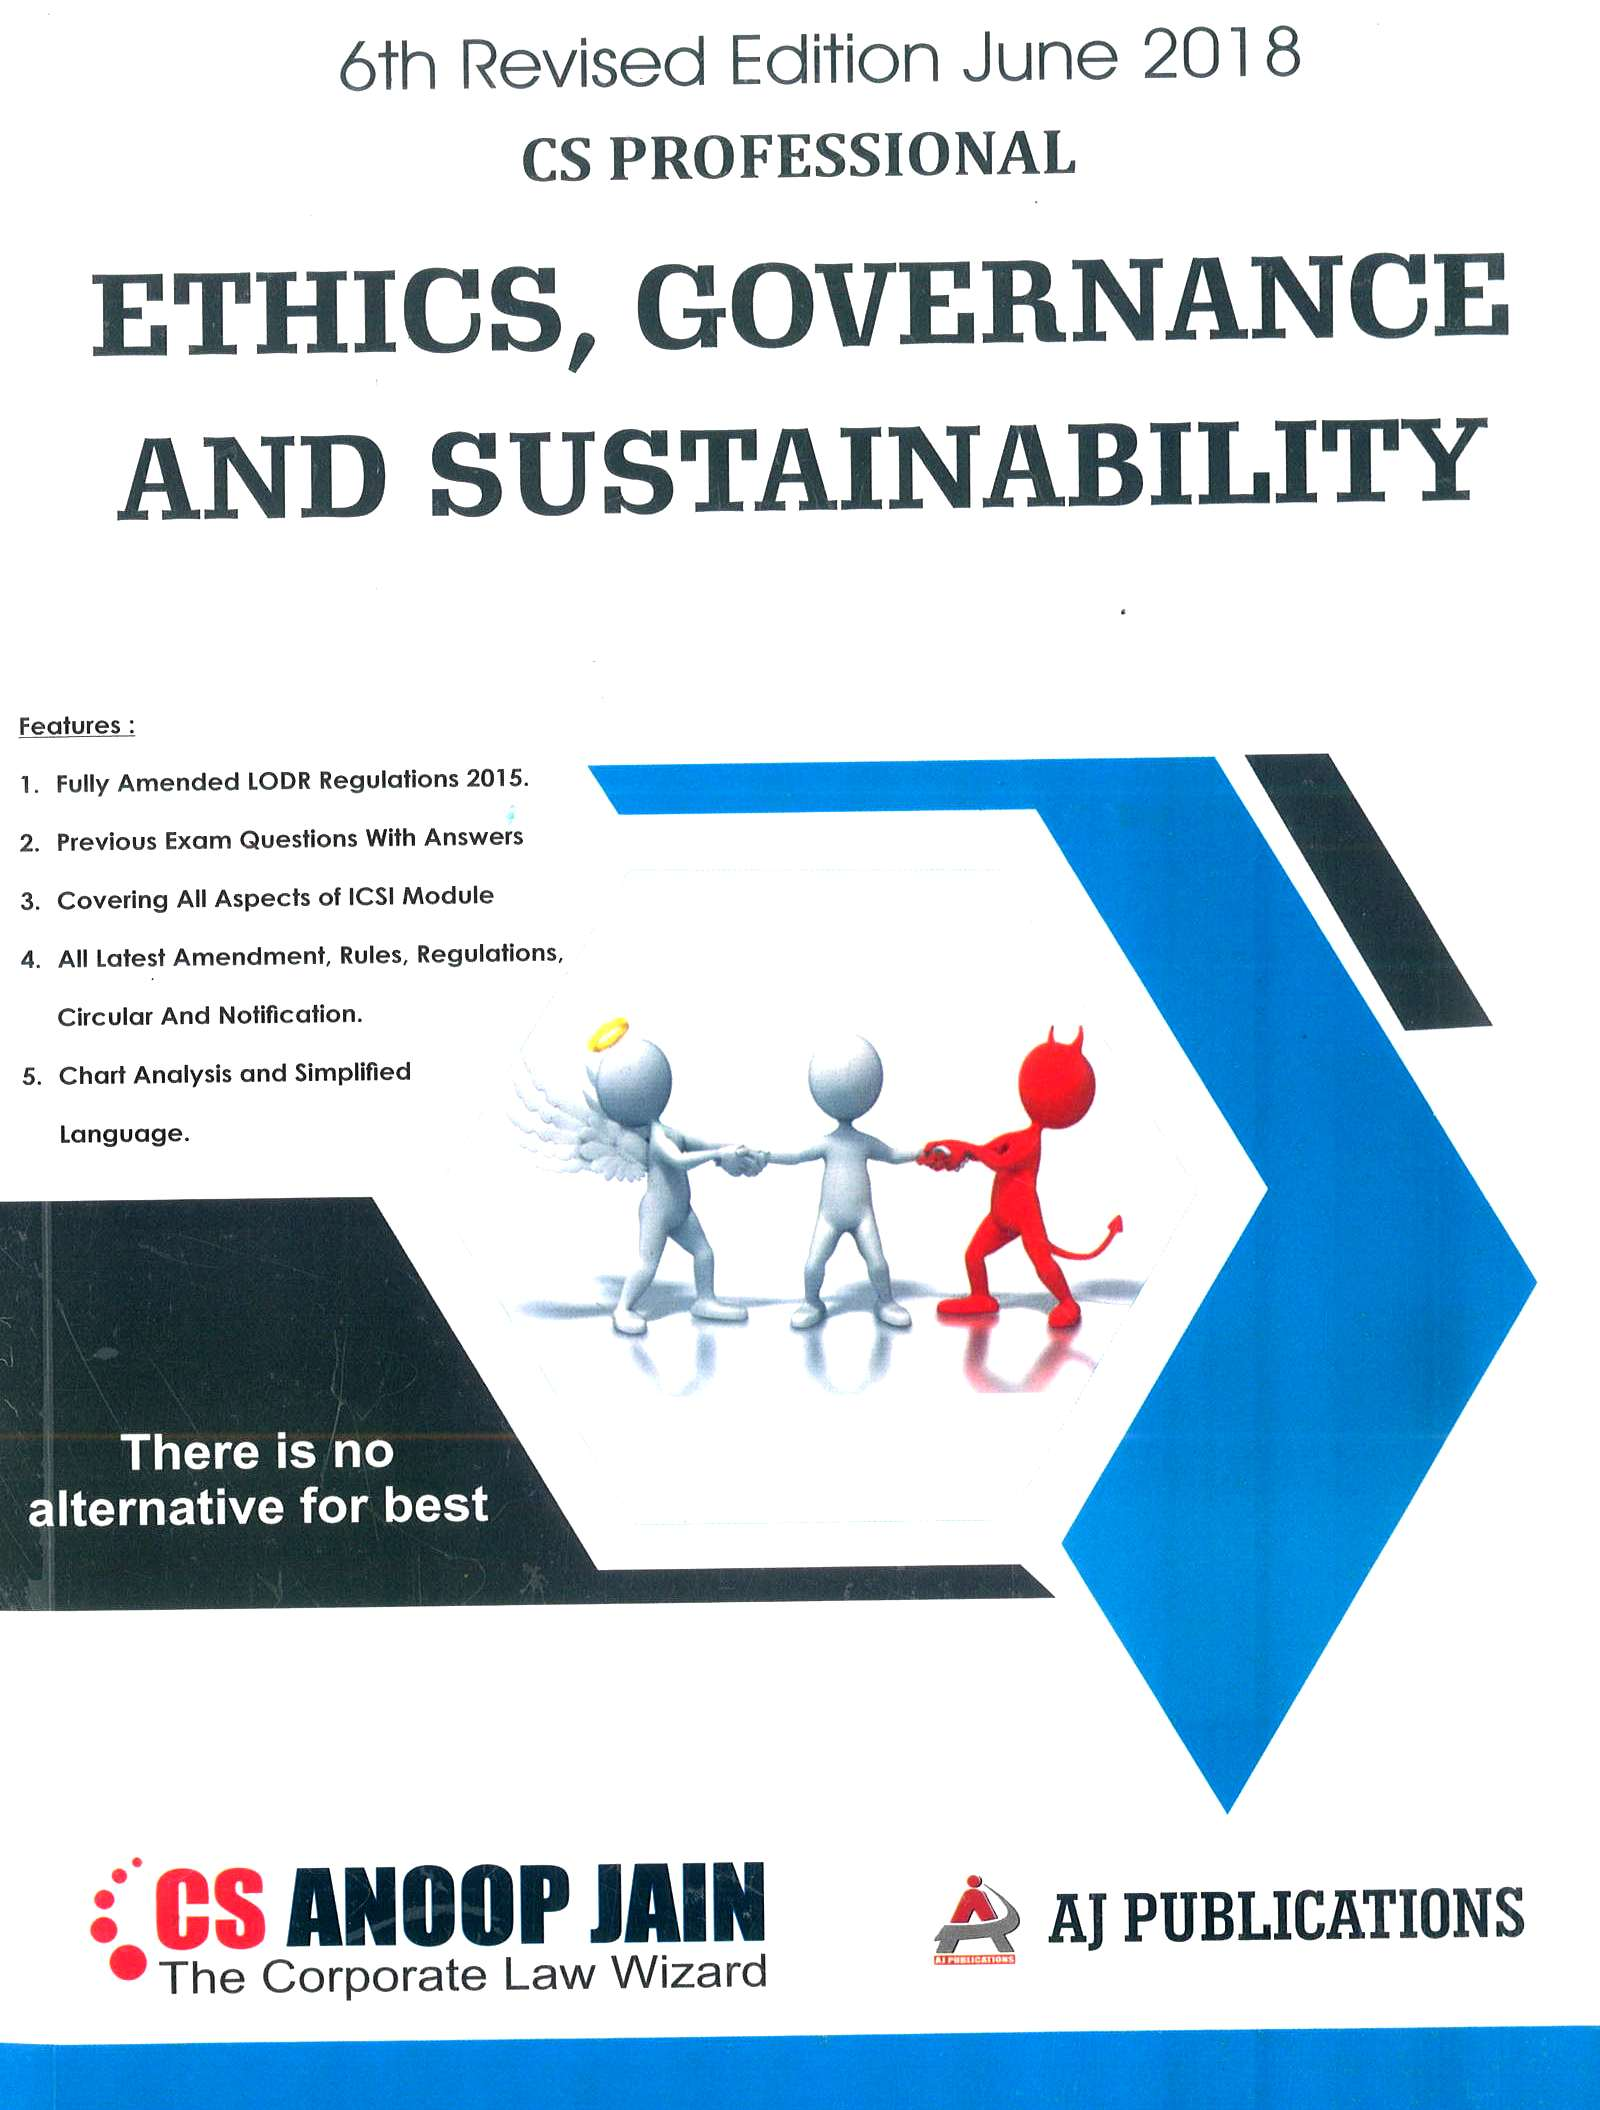 AJ Publication Ethics, Governance & Sustainability for June 2018 Exam for CS Professional by CS Anoop Jain (AJ Publishing) 6th Edition 2018